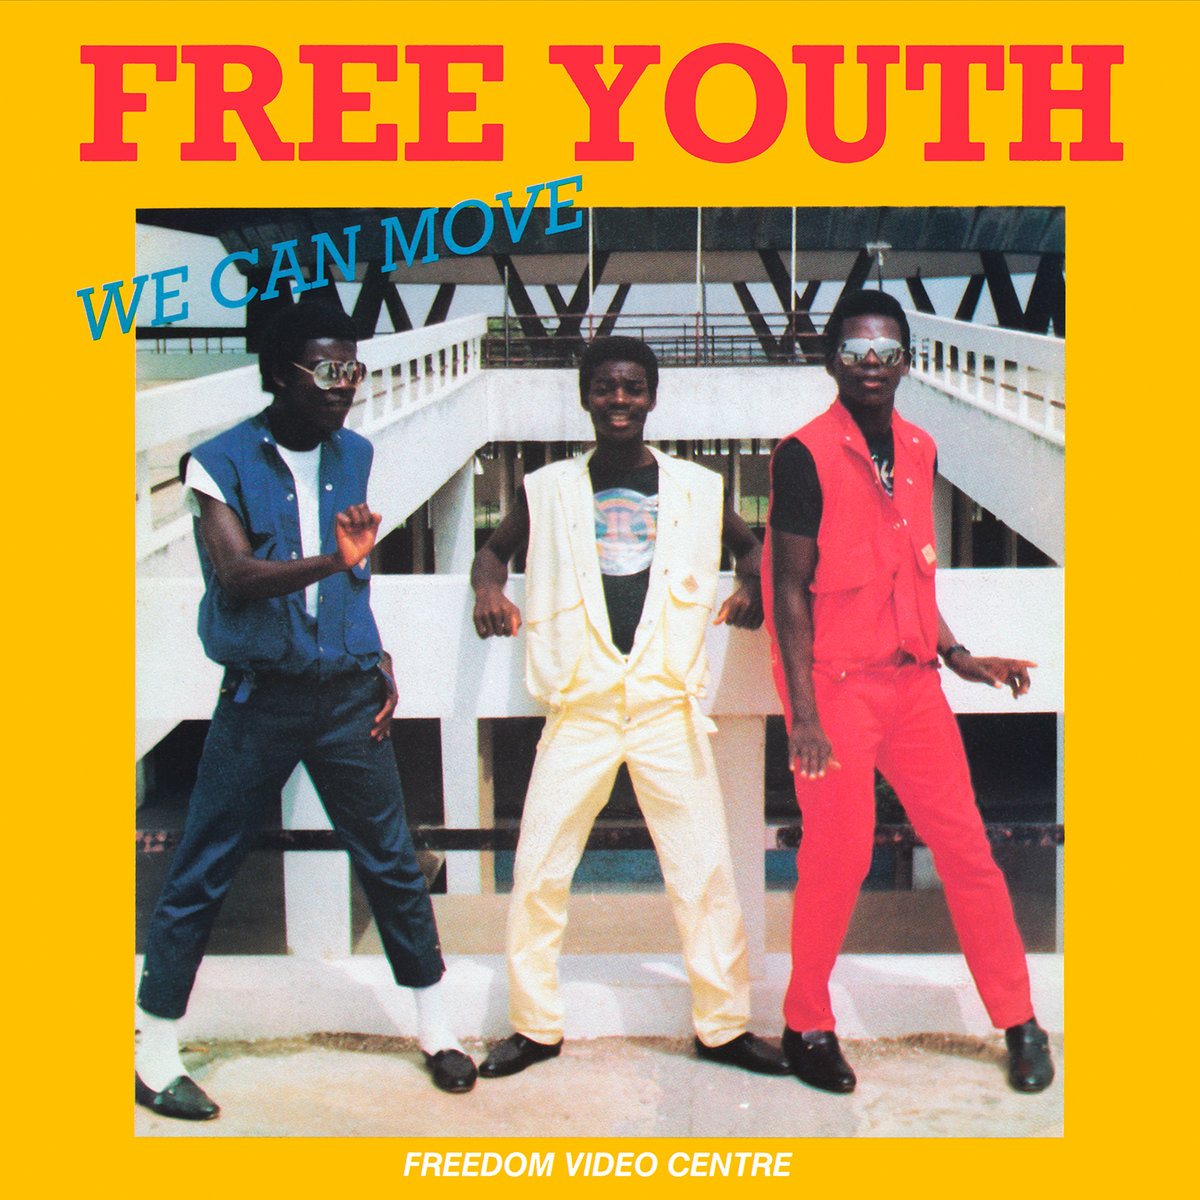 Free Youth we can move